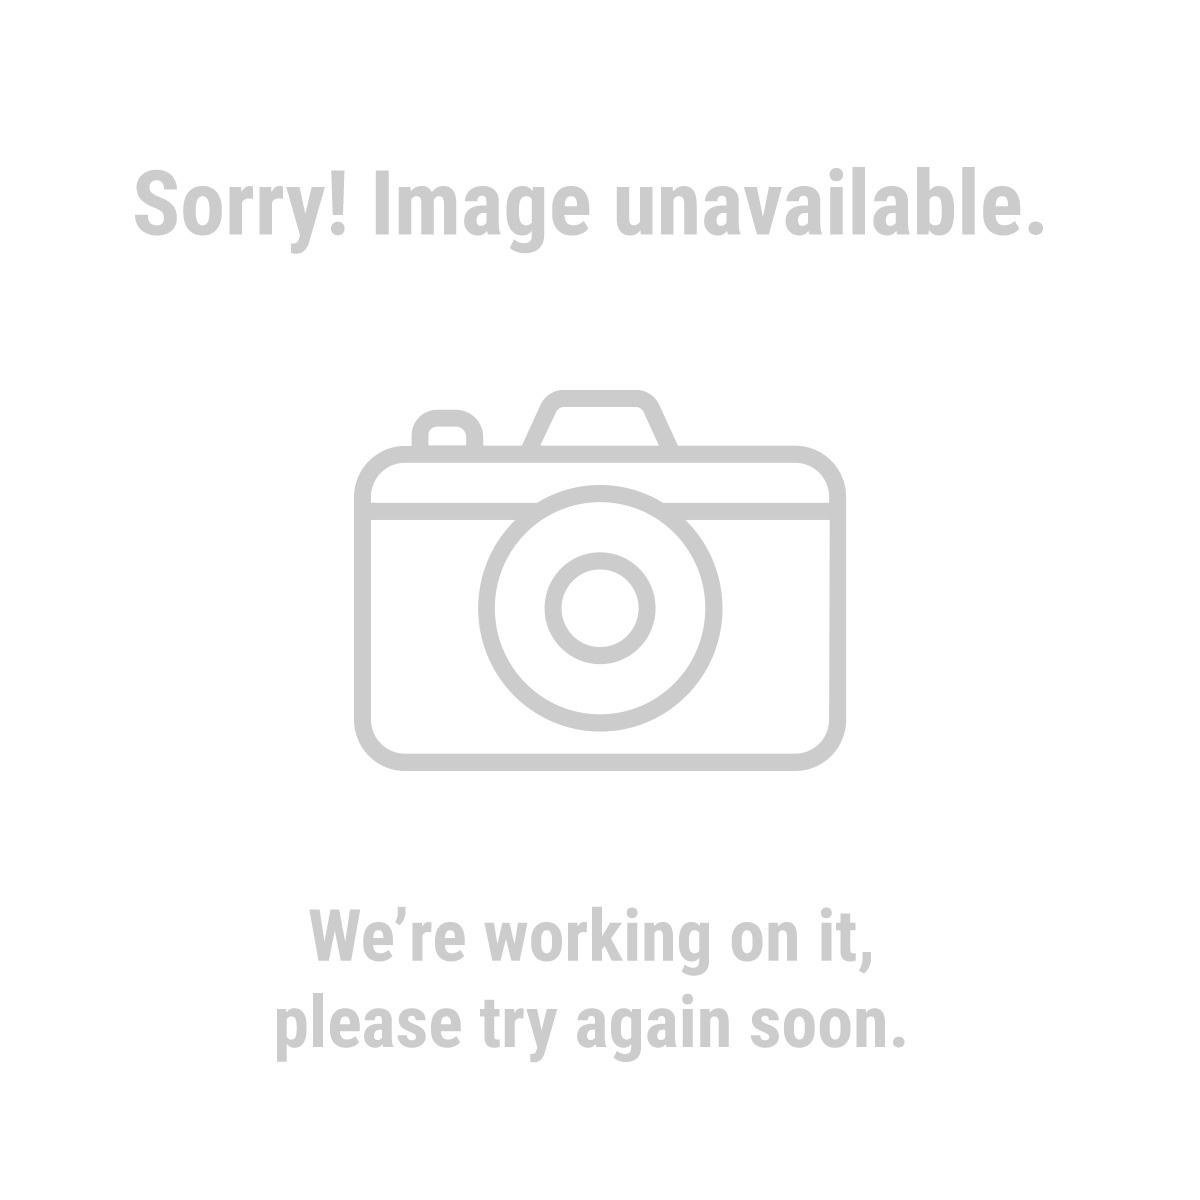 Bunker Hill Security 62368 4 Channel Wireless Surveillance System with 2 Cameras